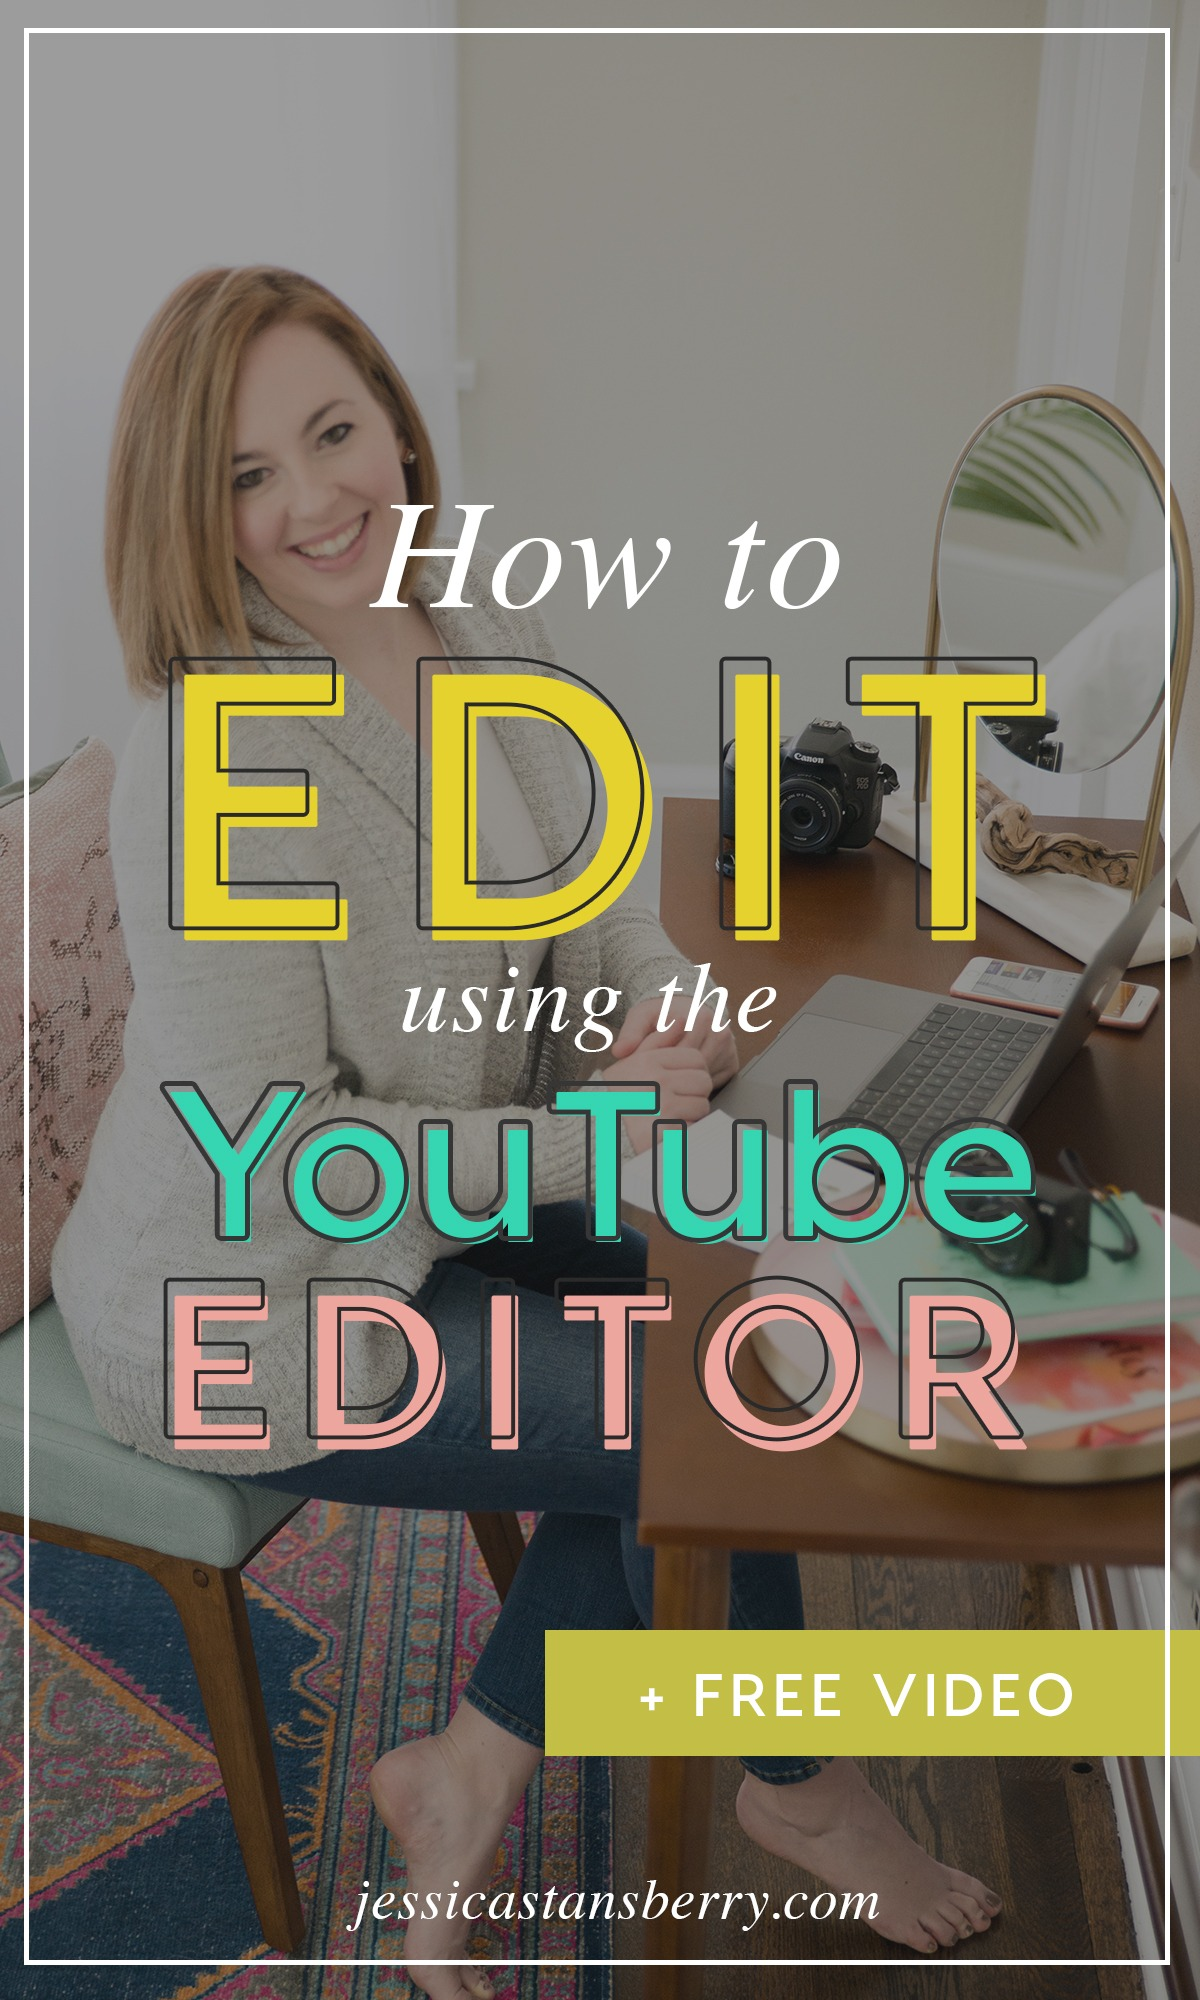 Editing in YouTube